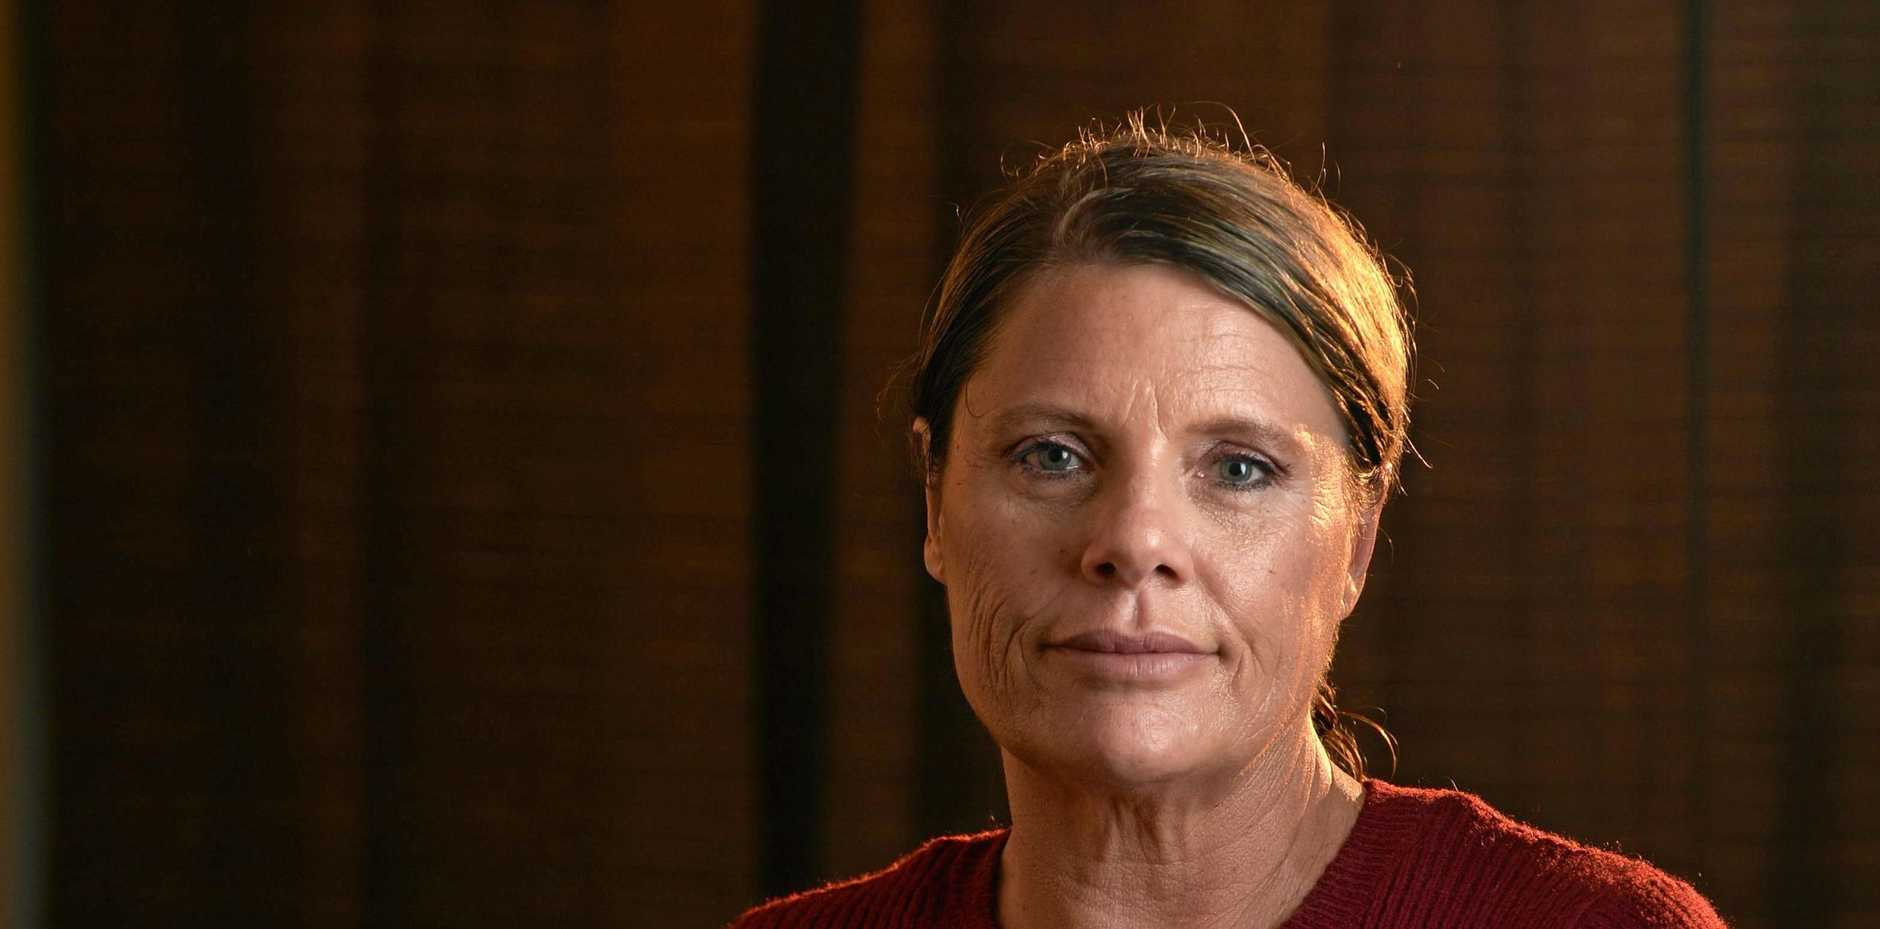 Margaret Taylor lost her son Ben in a car crash in 2008 and has started a support group for other parents who have lost loved ones.